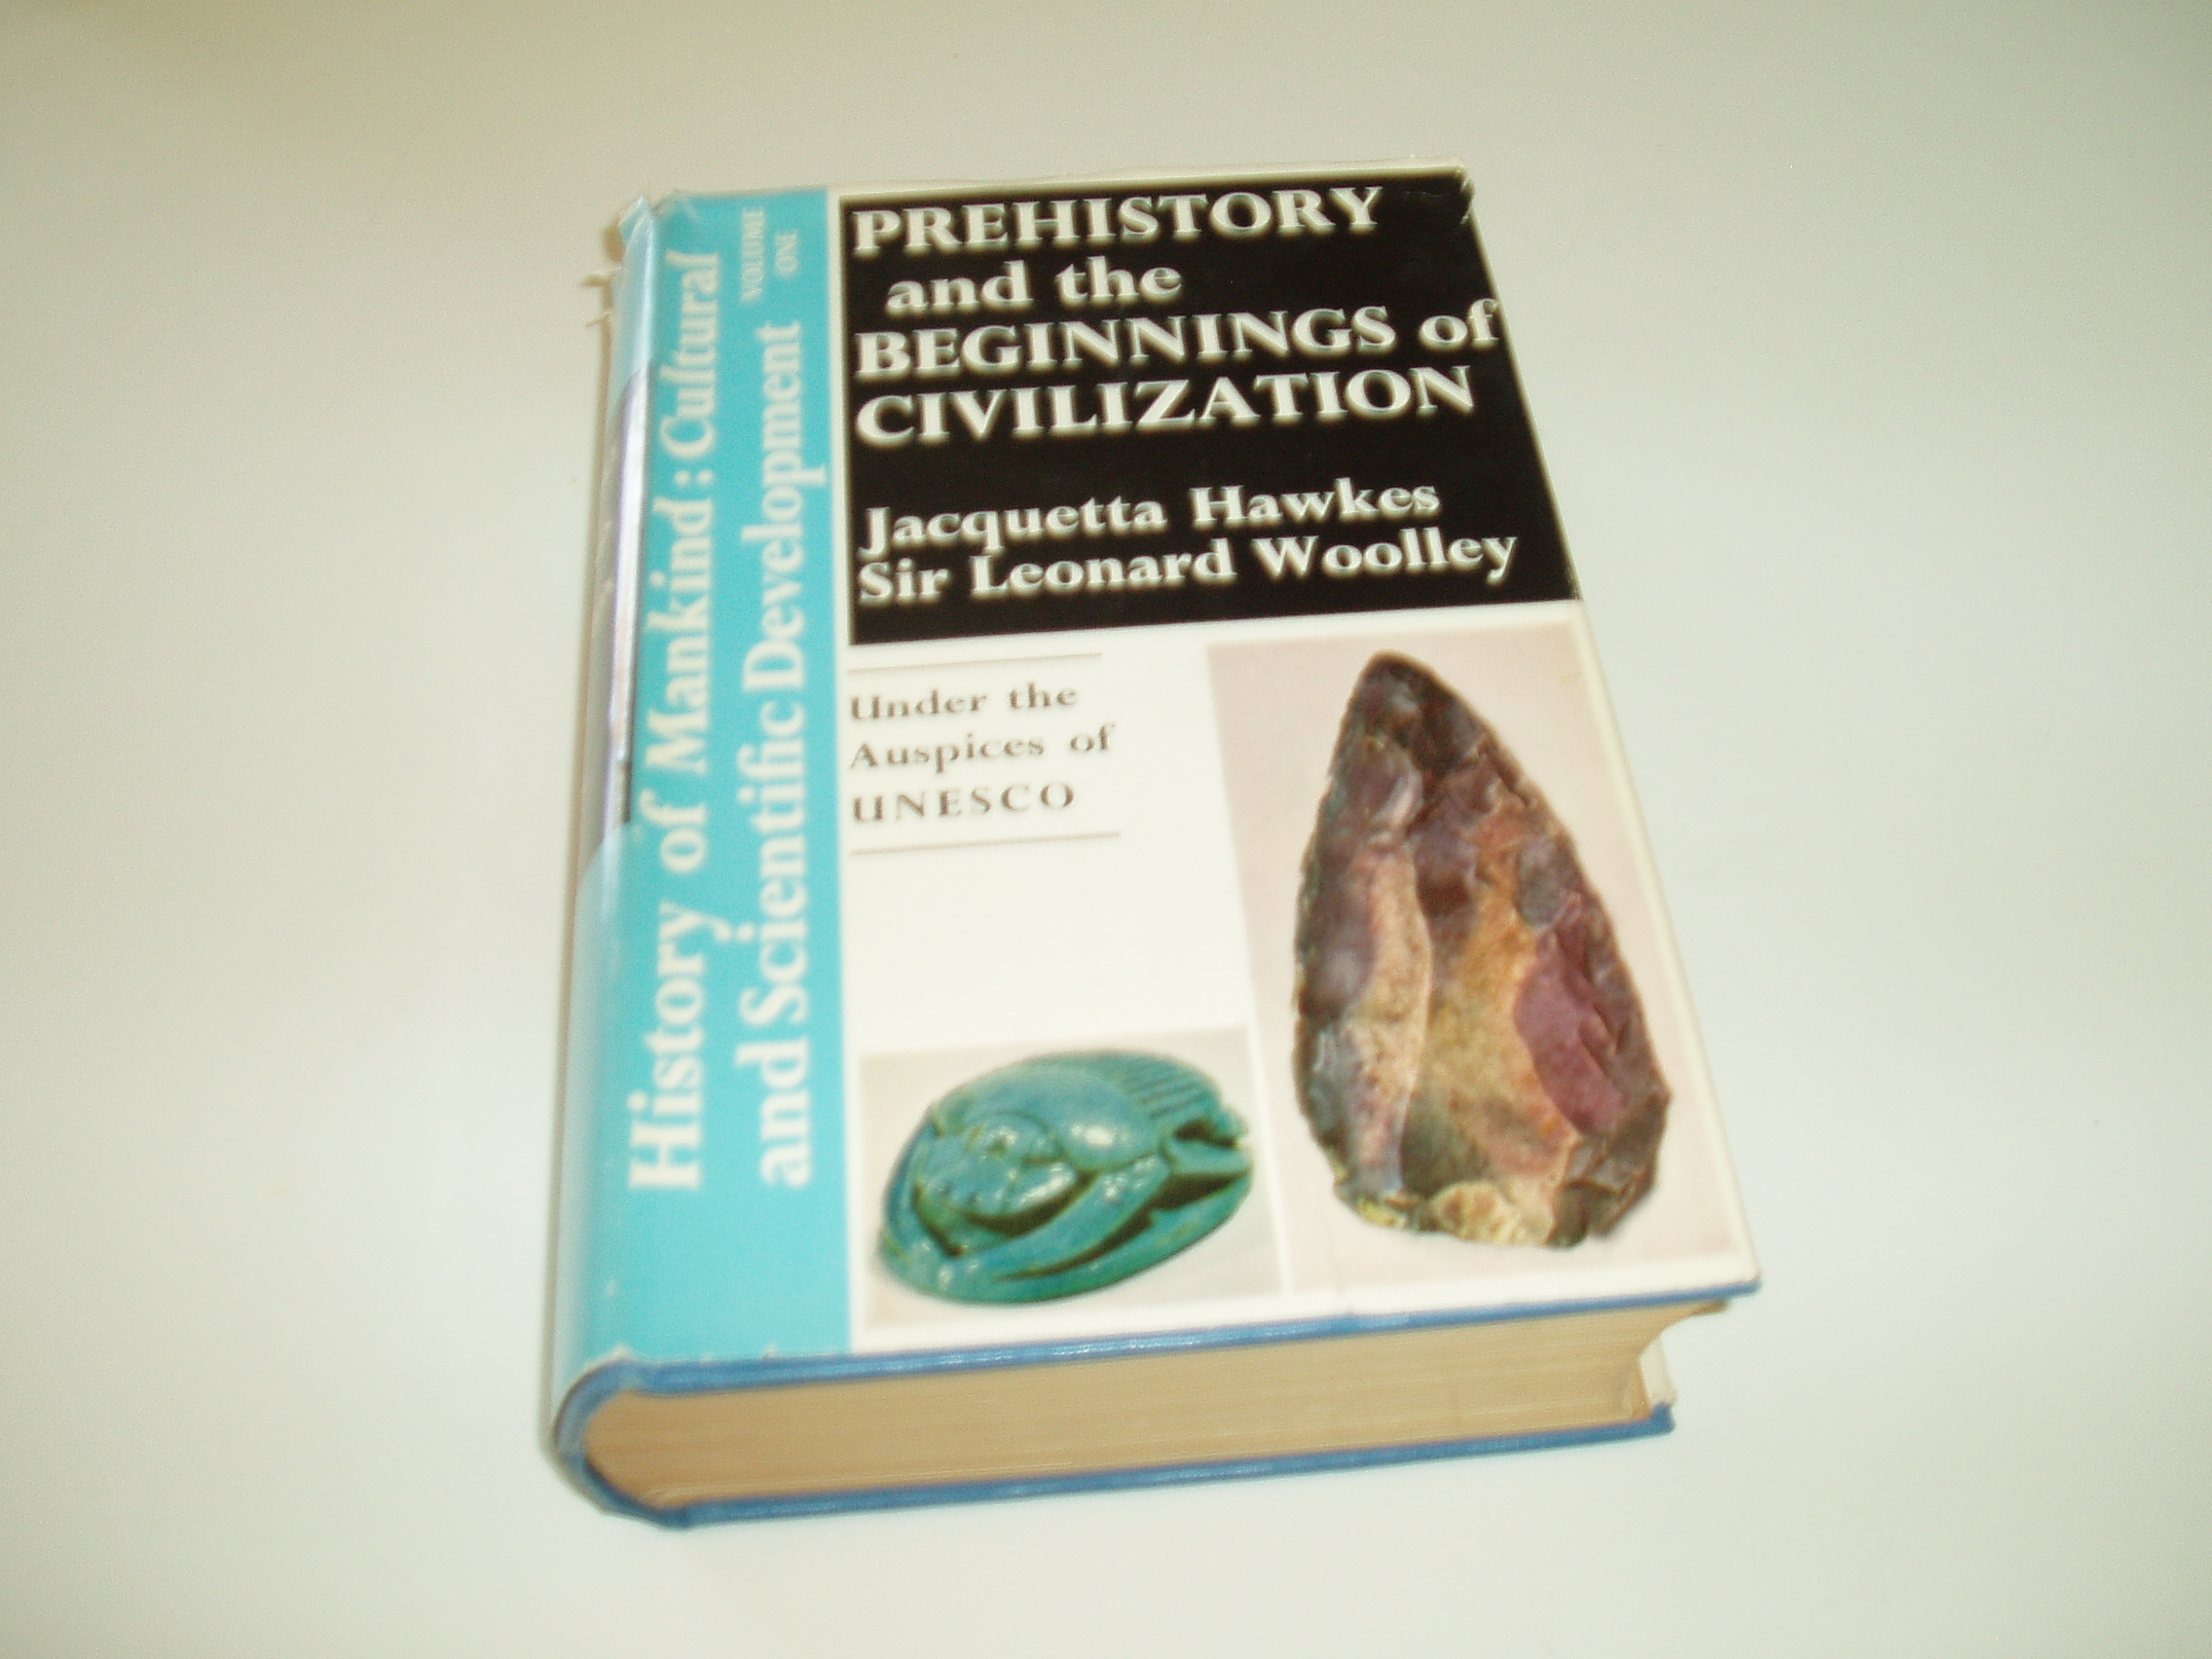 History of Mankind. Prehistory and the beginnings of Civilizatio